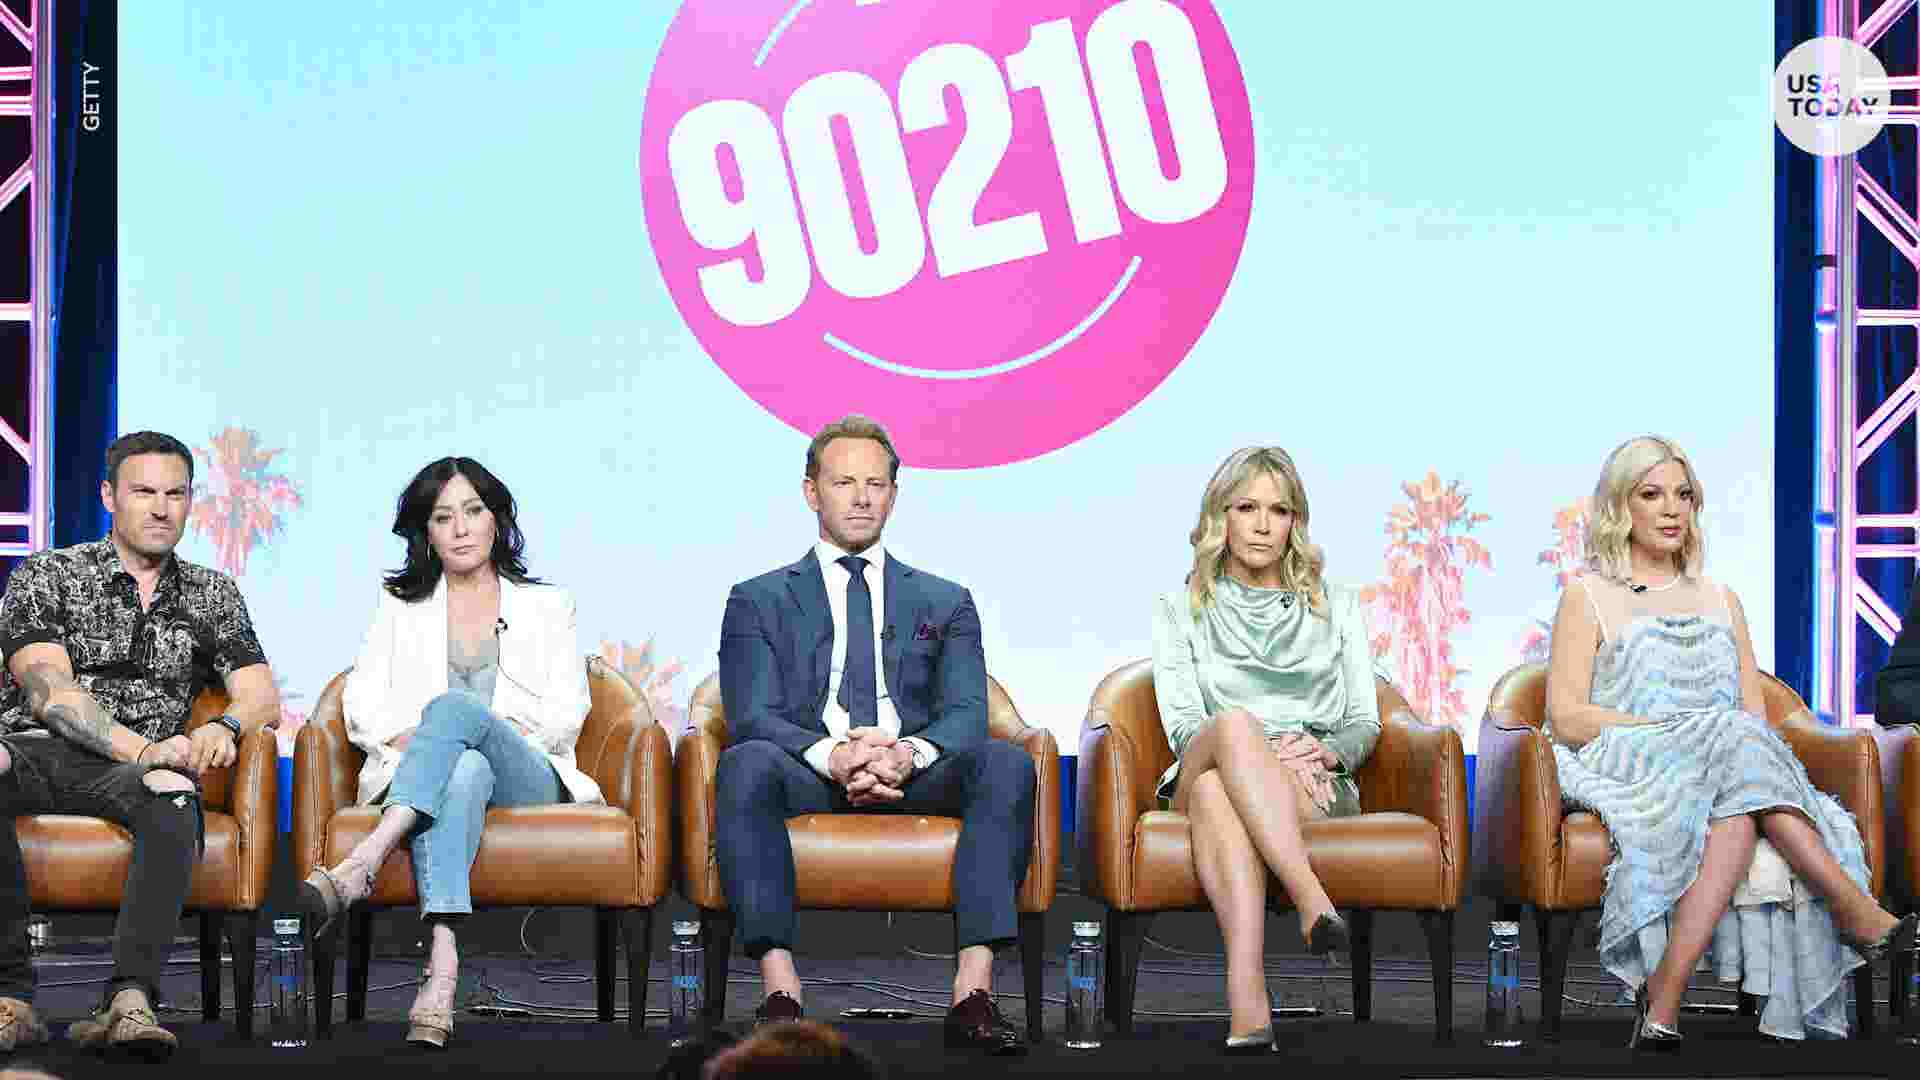 BH 90210' recap: Season 1, Episode 1, 'Reunion'